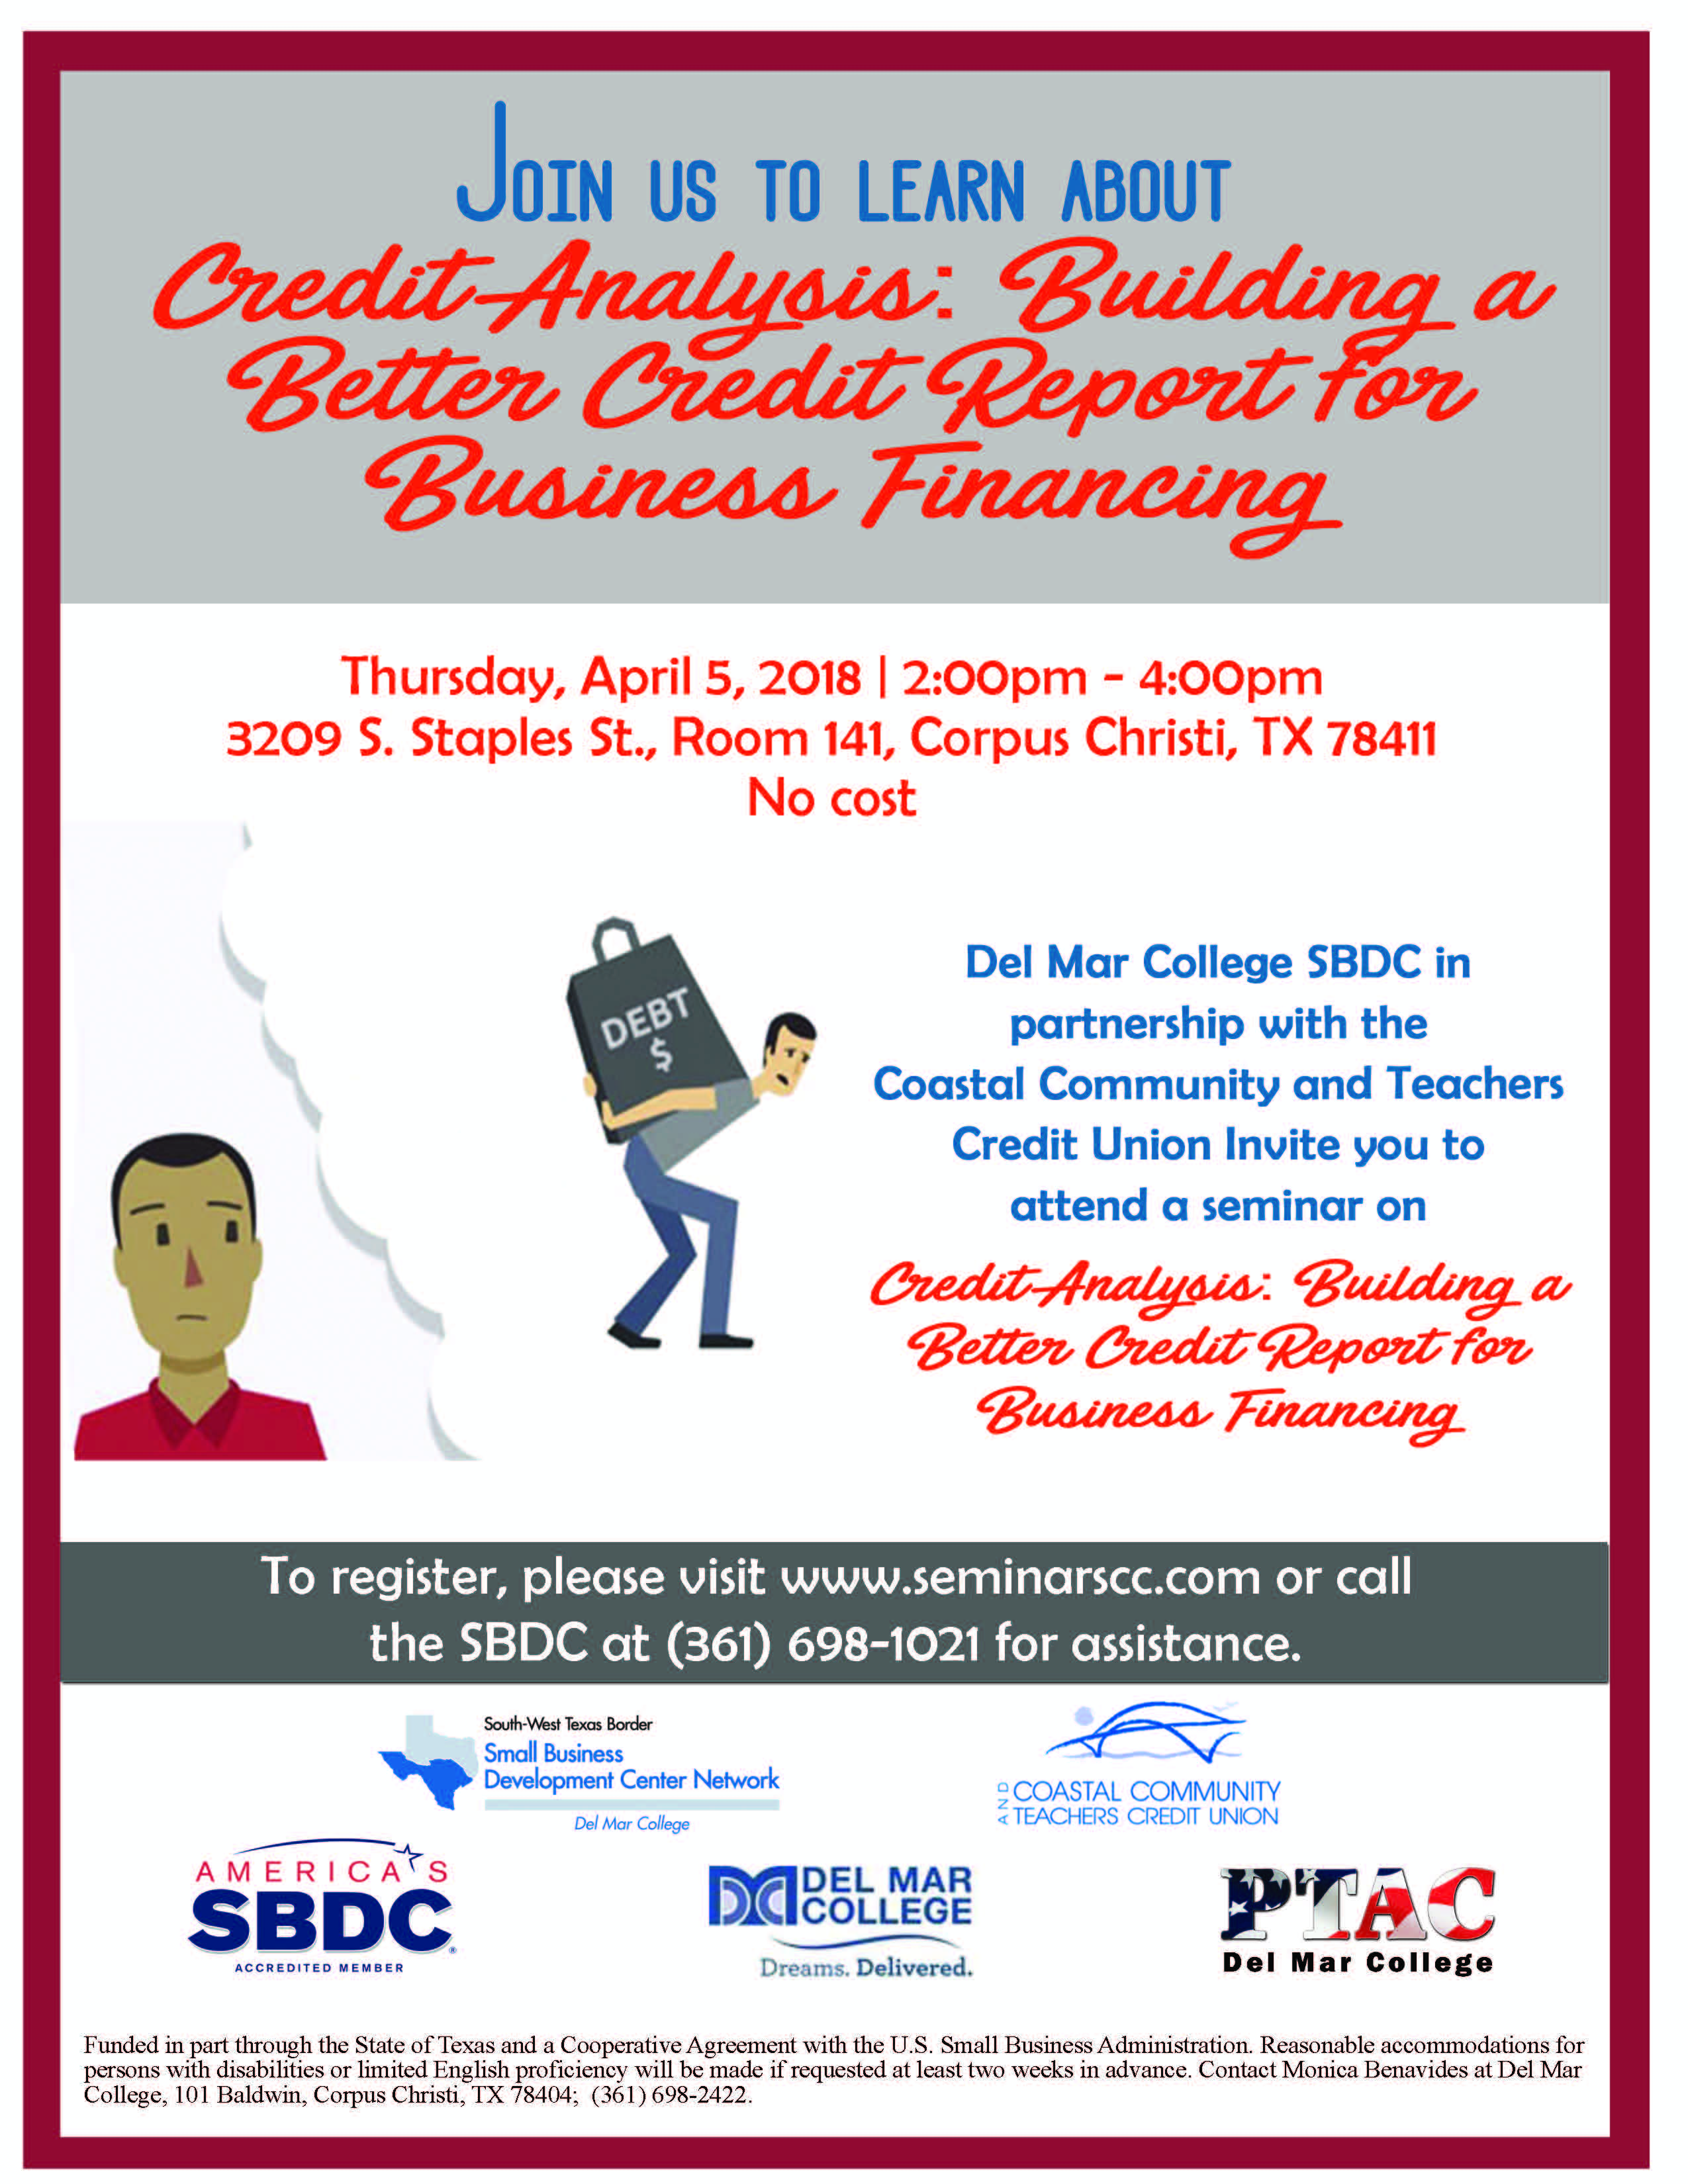 Flyer 20  20credit 20analysis 20building 20a 20better 20credit 20report 20for 20business 20financing 204.5.18